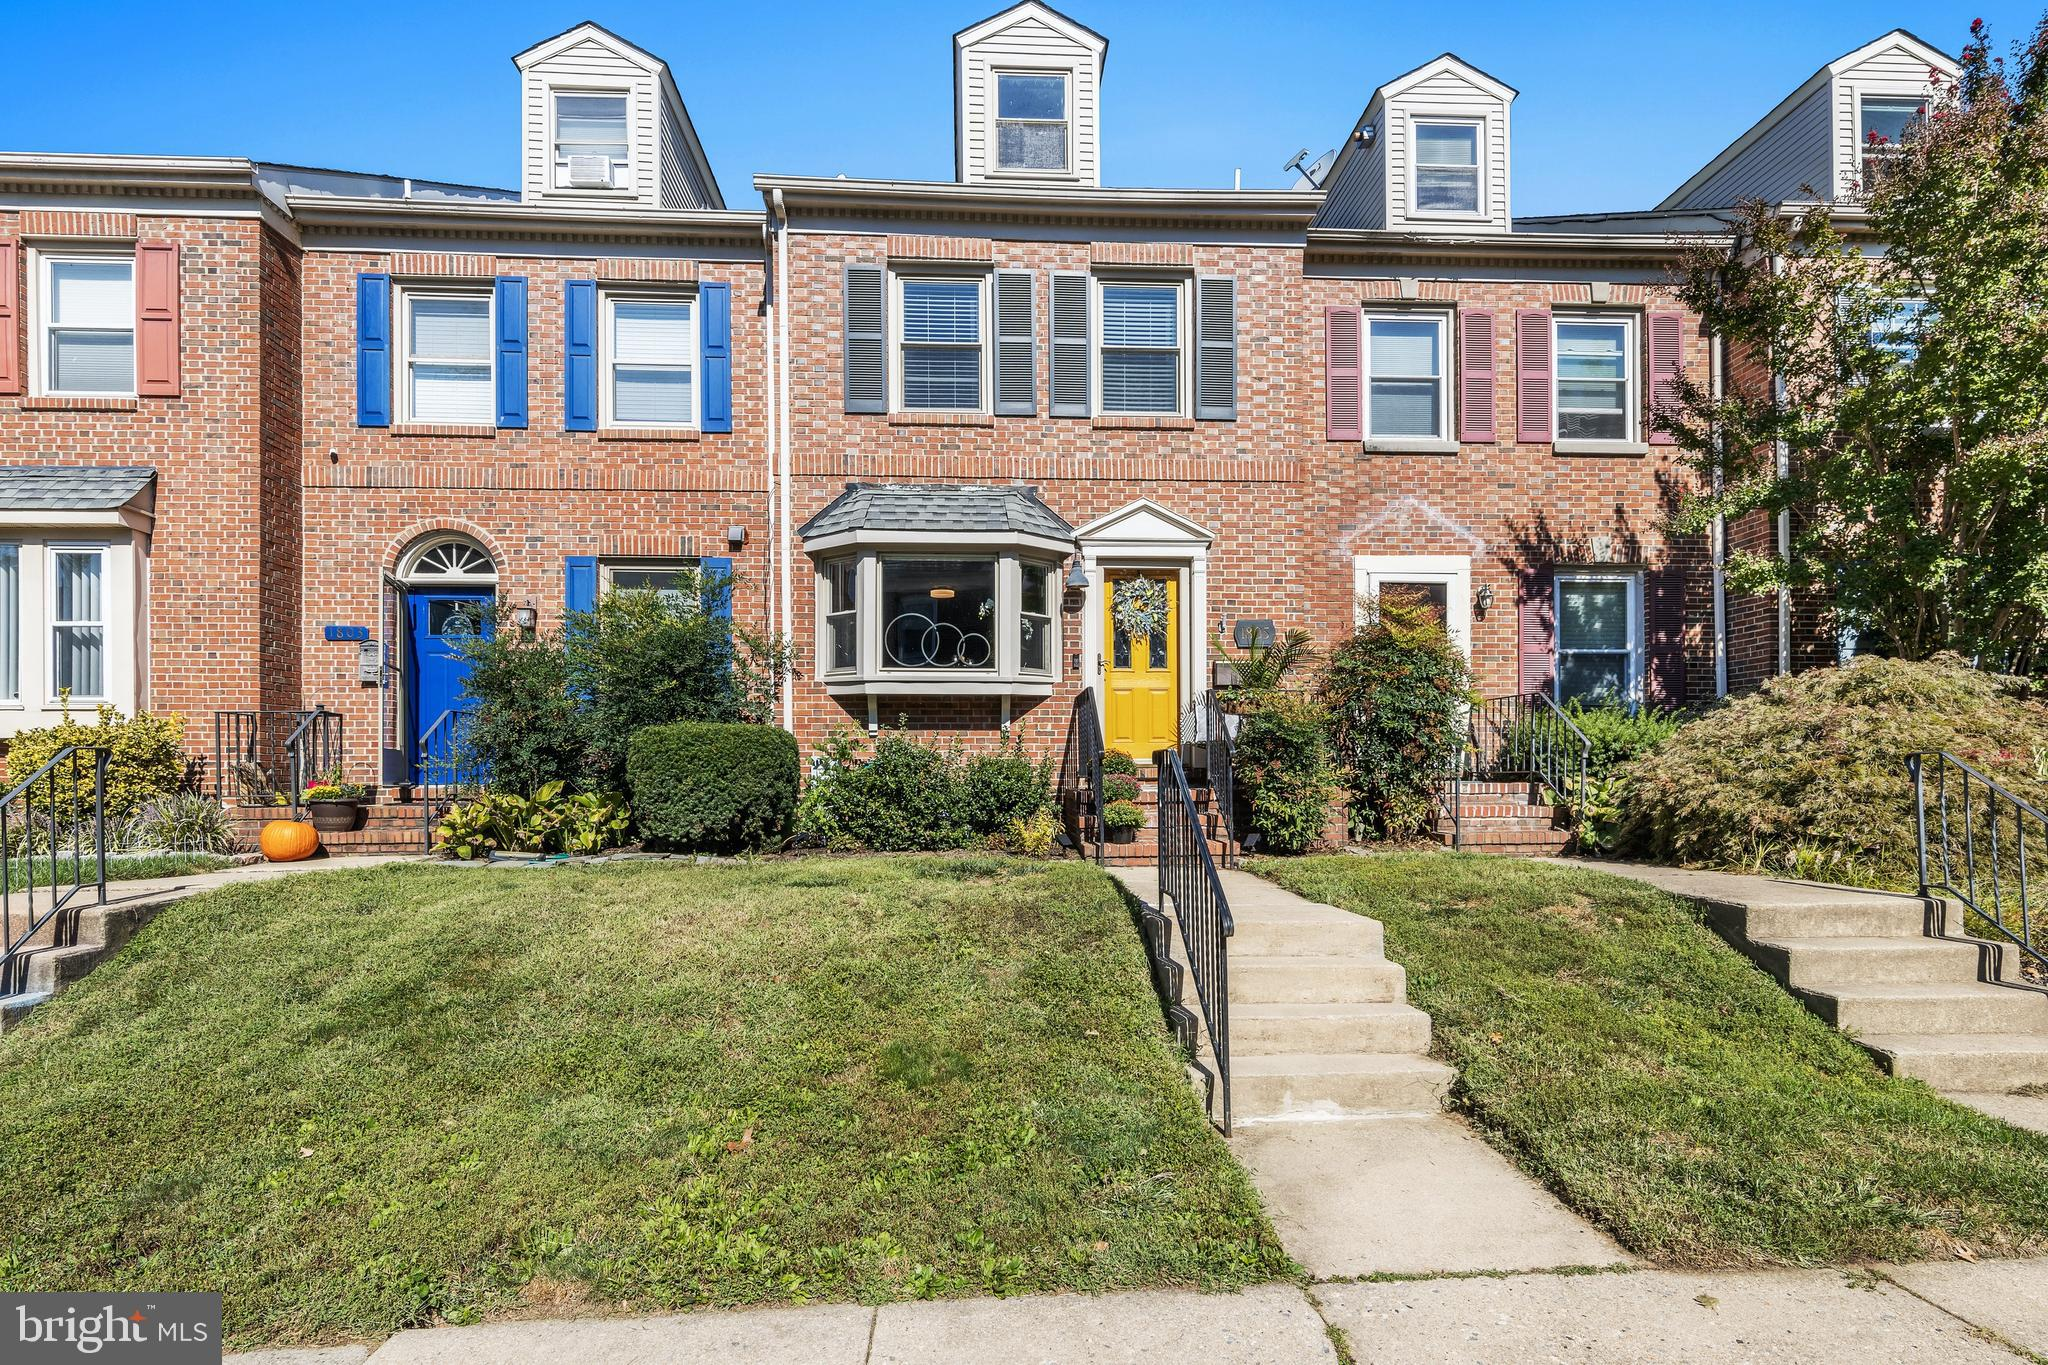 """Welcome to this extraordinary 3 bedroom, 2.1 bath (+ a 1 car garage) brick townhouse that has been REDUCED! professionally updated throughout : Notice the expanded opening into the chef's kitchen (features include 42""""grey painted cabinets with quiet close feature, quartz countertops, subway tile backsplash, stainless steel undermount extra-depth sink with designer faucet , on trend hex tile floor, Kitchenaid stainless steel appliances - smooth-top range, build-in microwave, dishwasher, side by side refrigerator with icemaker - & of course a wine cooler!! Thanks to the triple bay window  this kitchen is bathed in natural light, but like the hallway boast an upgrades ceiling mount light fixture. The open dining room & living room was designed for entertaining or just cozy evenings at  home. Featuring hardwood floors, a wood burning fireplace (seller will graciously leave the TV mount over the fireplace) & sliders to the enclosed & private deck (which also has an entrance to the one car garage). Rounding out the first floor is a hall closet & a powder room (note: the tax records do not indicate that there is a PR, but it is just to cute to overlook - new vanity, mirror & lights + the wallpaper is peel &stick, so very easy to change out!!)  SECOND FLOOR Owners Suite - located in the front of the house -  generous size, 2 double closets, upgraded carpets, ceiling fan & professionally designed Bath (with a barn door!!!) new vanity, lights, tile floor & shower + a linen closet Guest bedroom - located at the back of the house - generous size, with oversize closet & access to hall bath which features a shower/tub combination  Rounding out the second floor is the laundry room complete with storage space  THIRD FLOOR - features a third bedroom, but current owners  have used it as office space (something that has come in handy this past year), extra bedroom & exercise area (sellers will leave window air conditioner which comes in handy when working out there!!) The whole house """